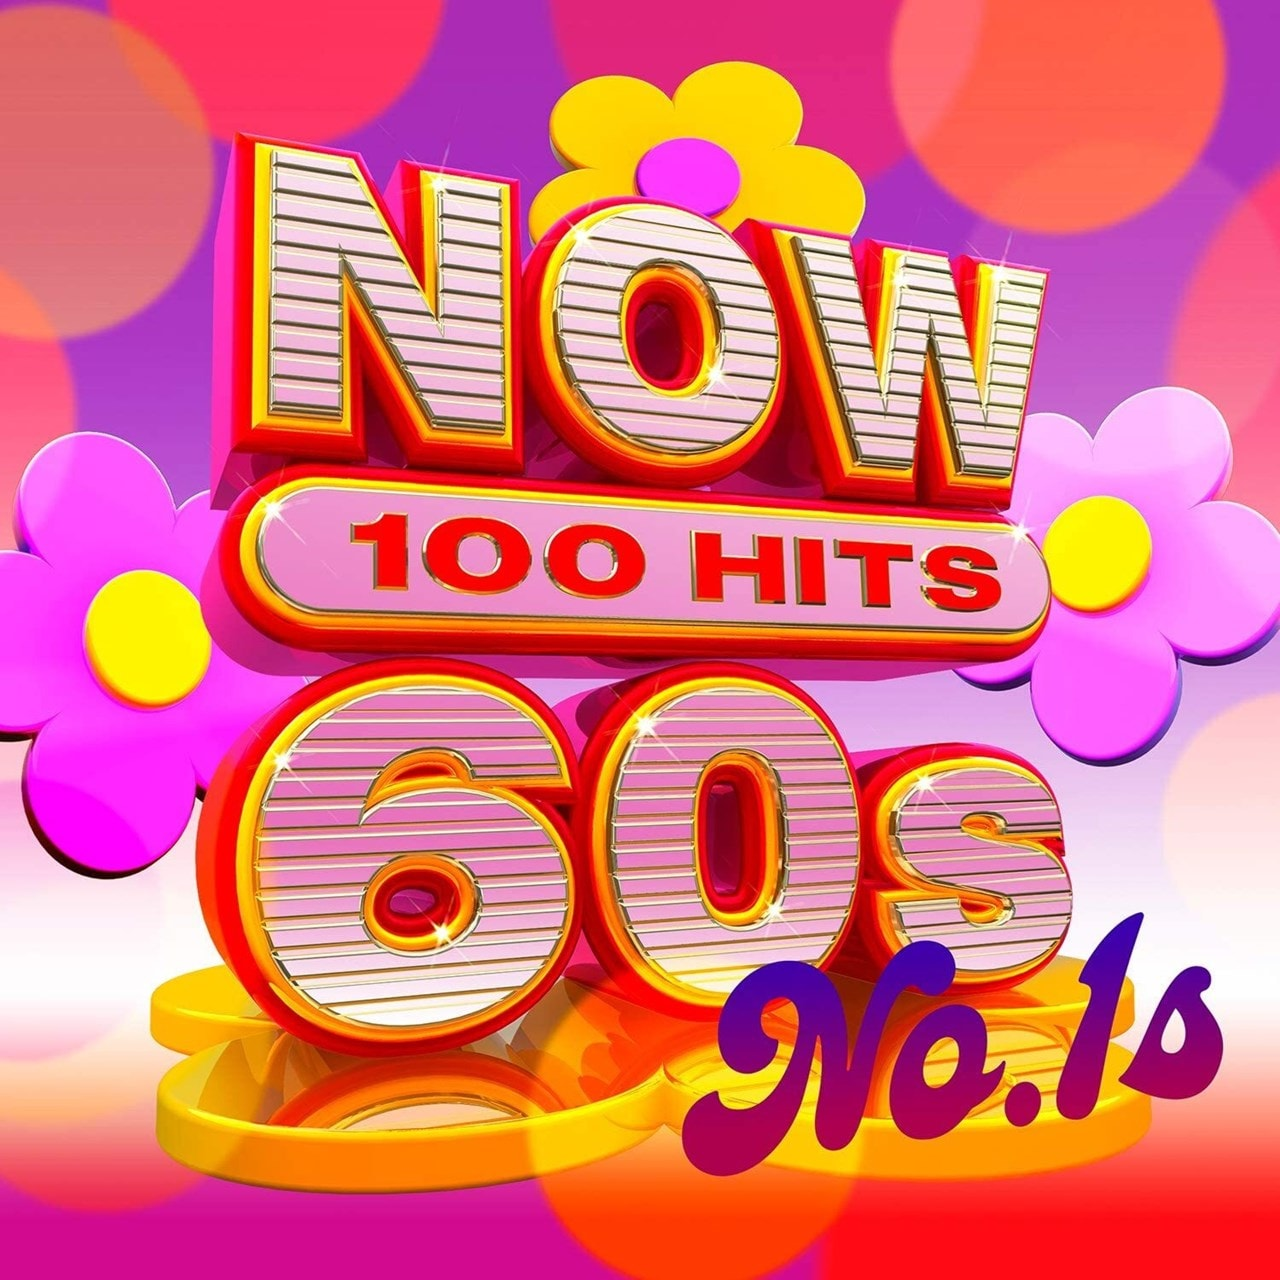 NOW 100 Hits: 60s No. 1s - 1